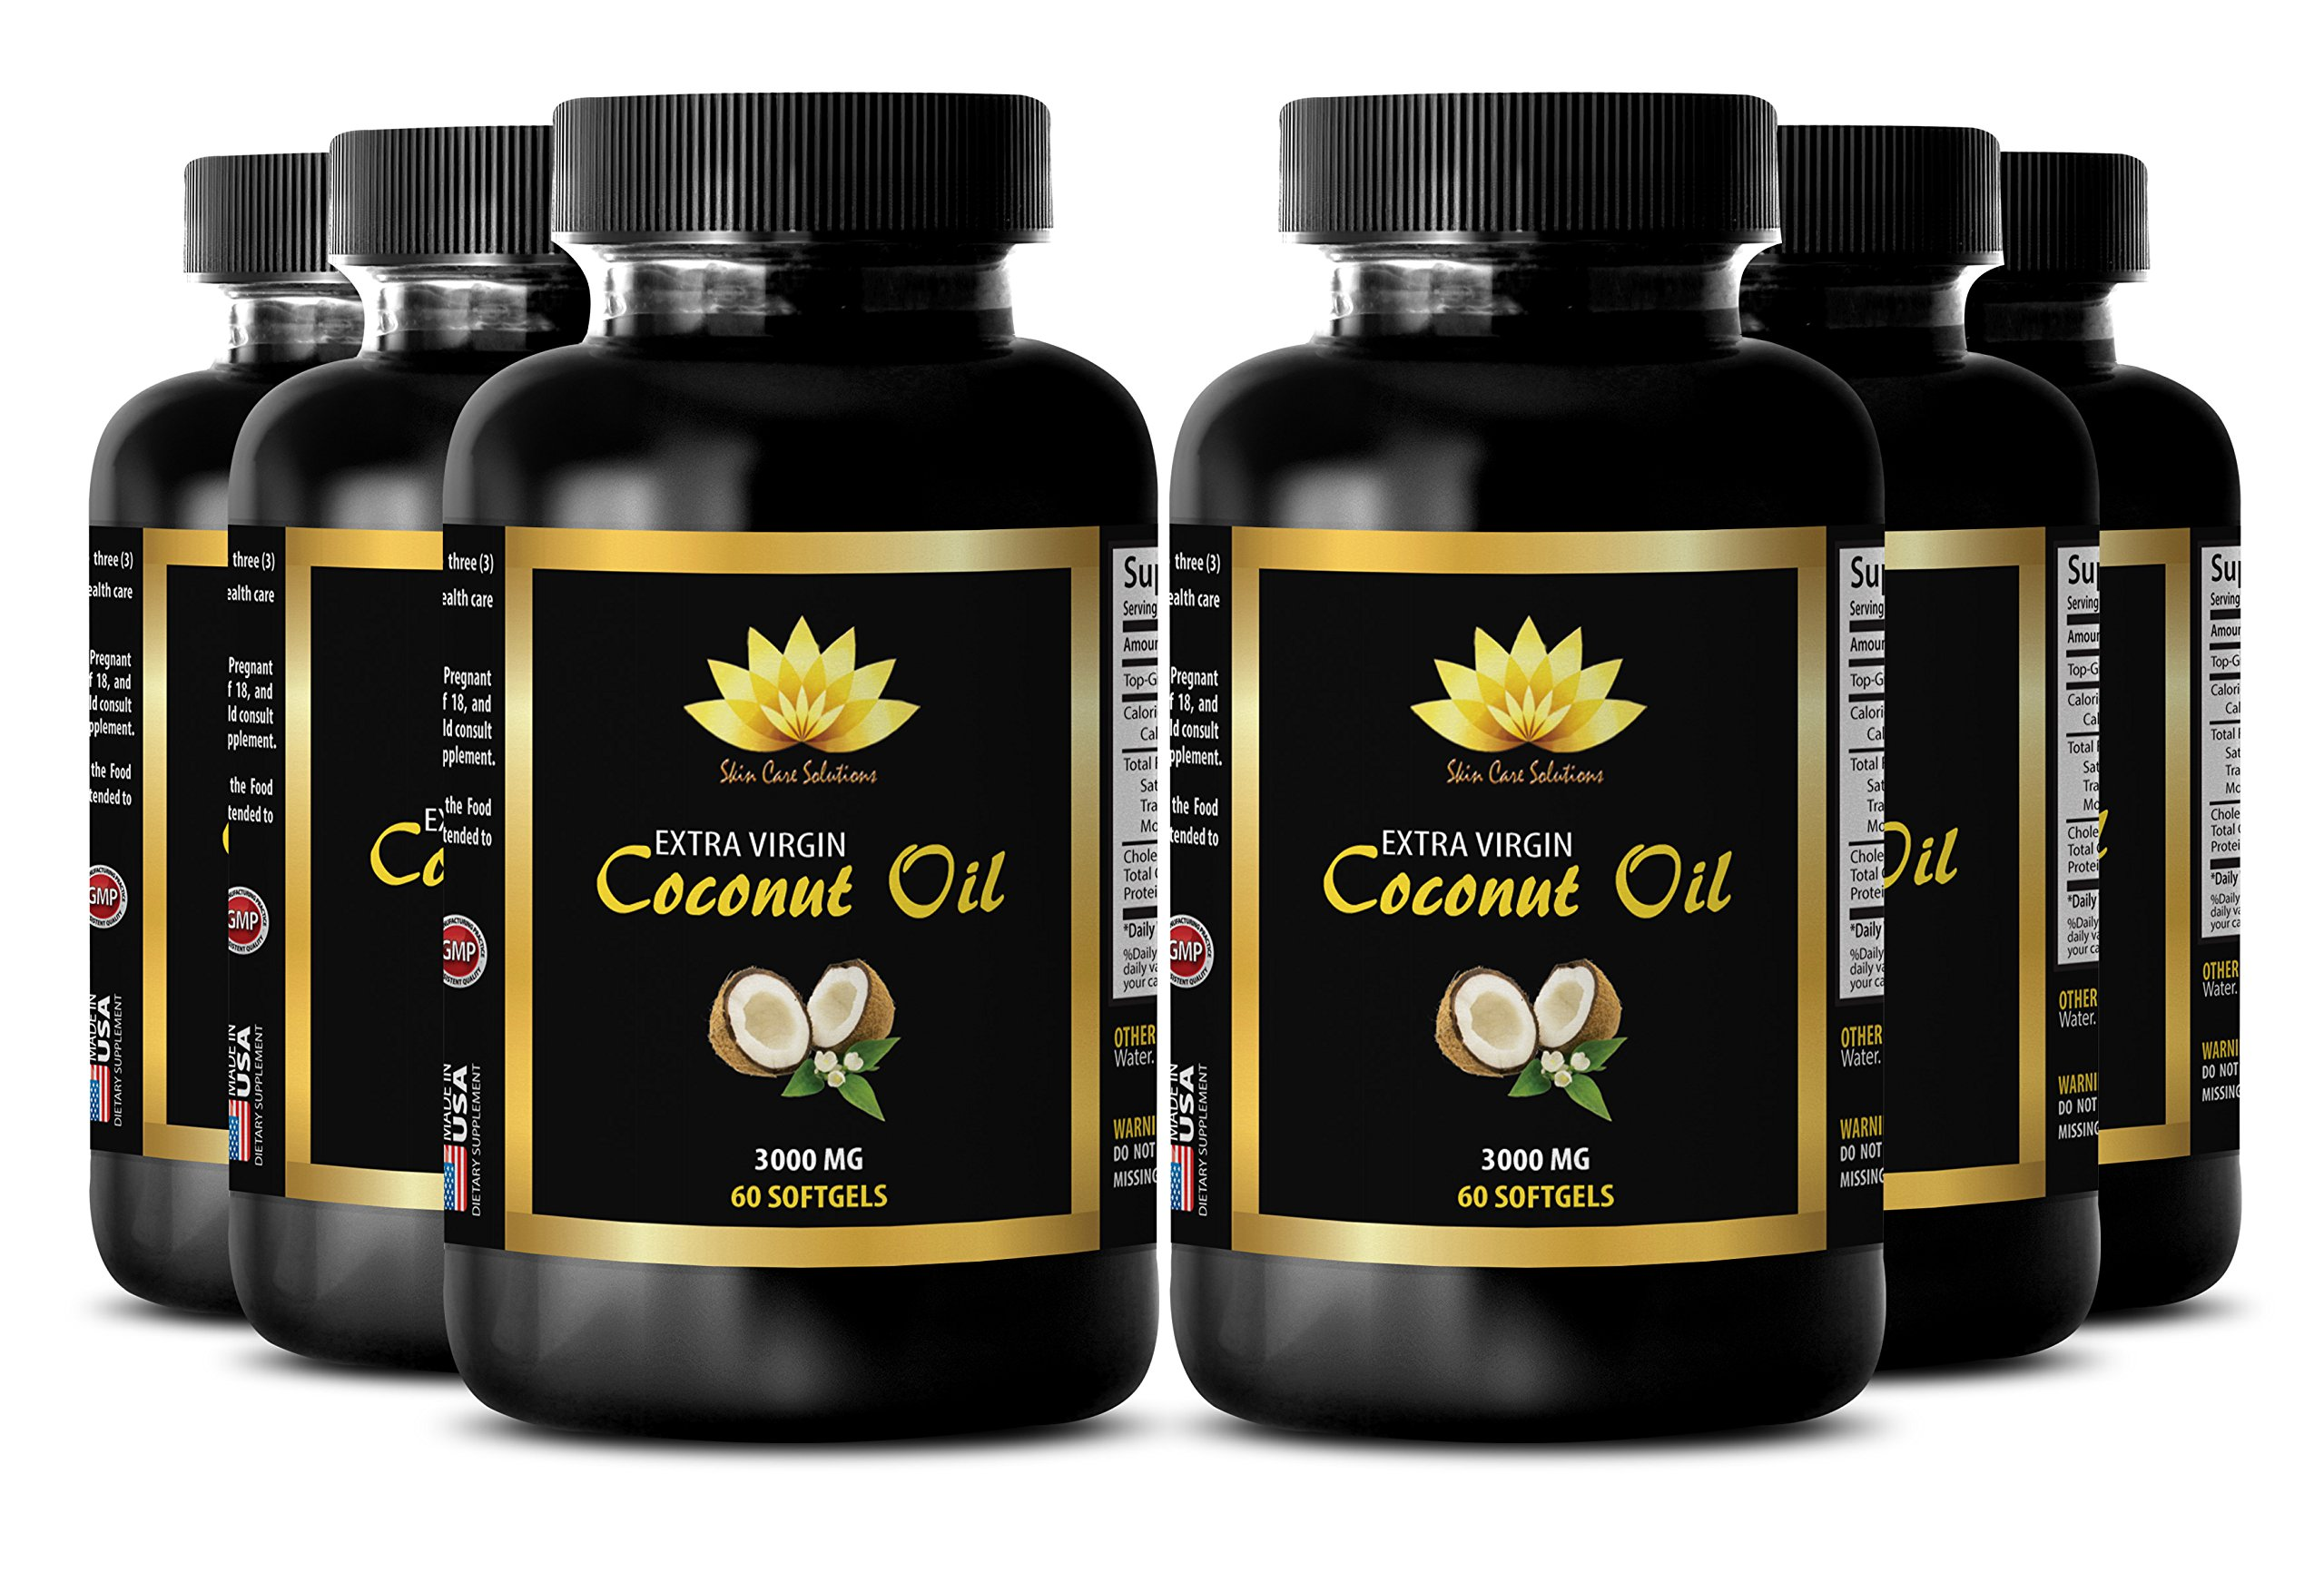 Memory supplements - EXTRA VIRGIN COCONUT OIL 3000 MG - Boost memory - 6 Bottles 360 Softgels